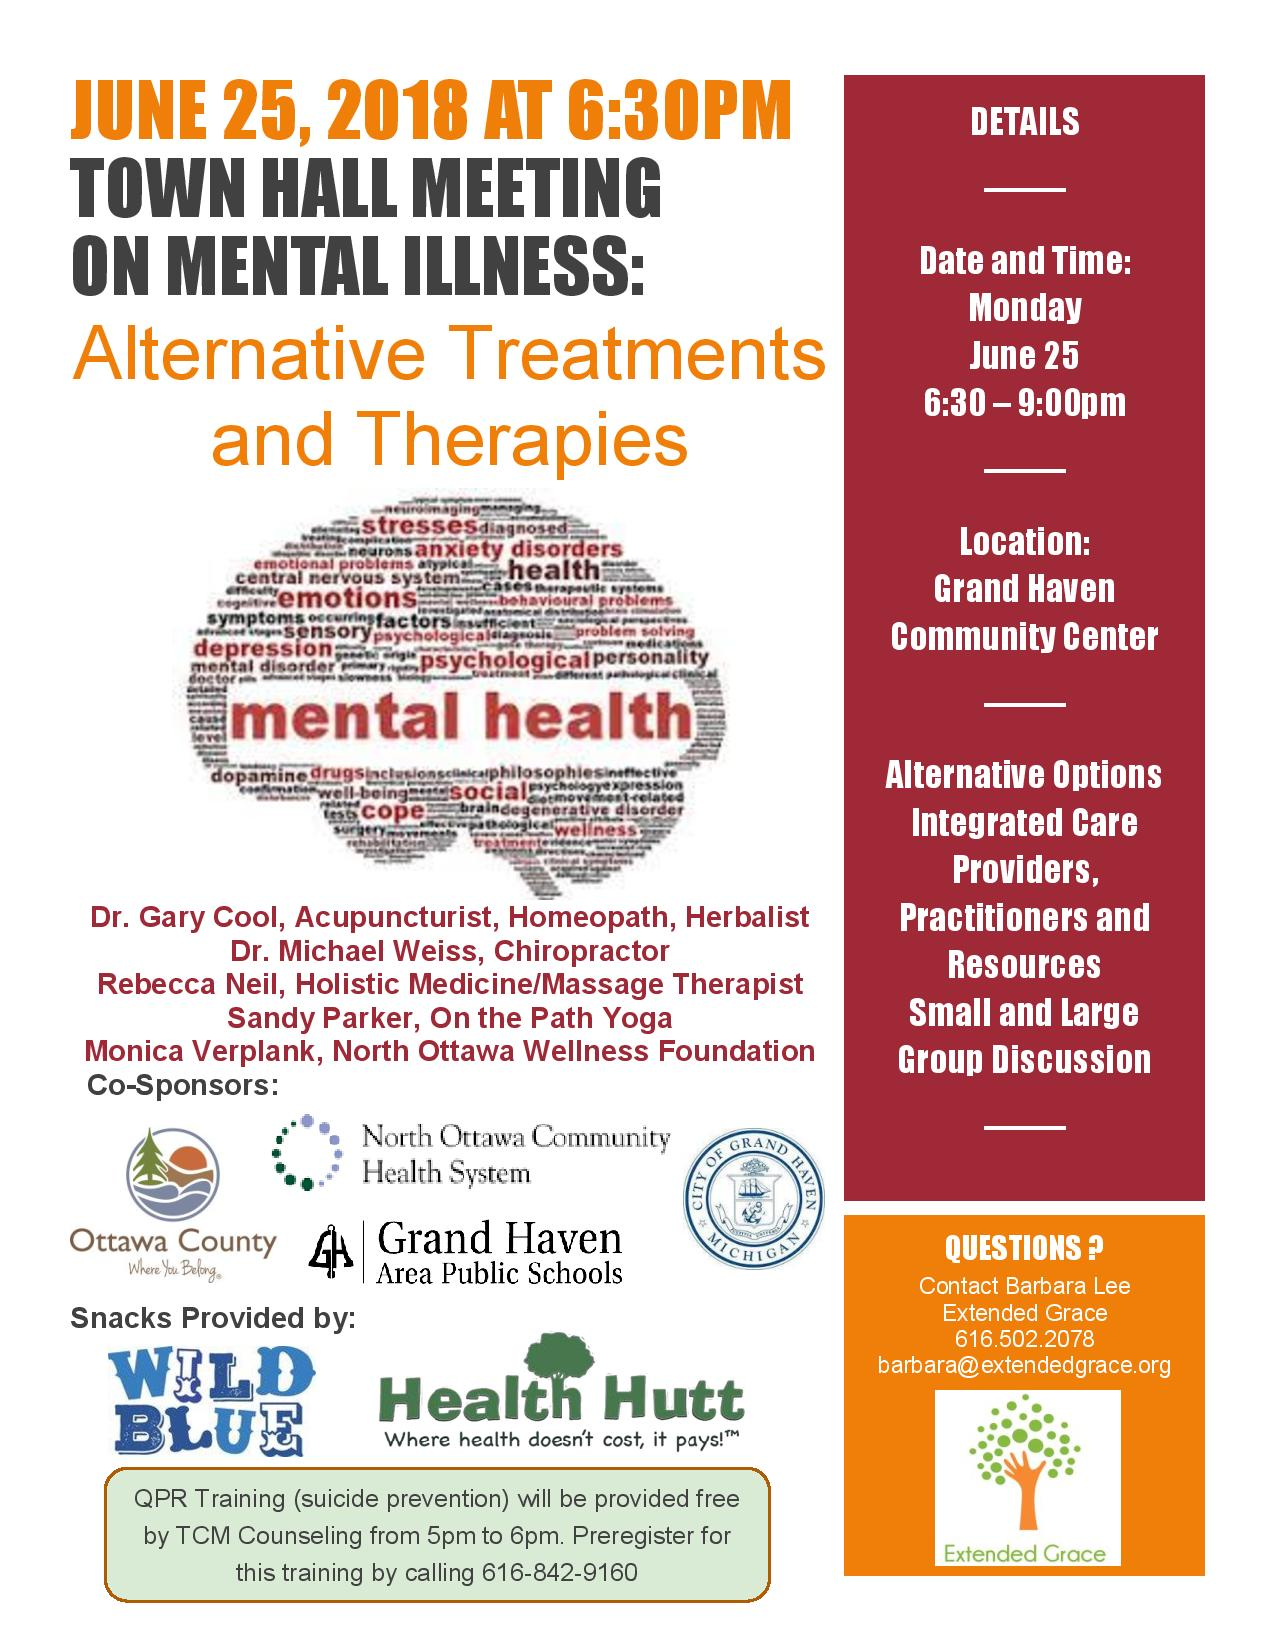 Town Hall on Mental Illness: Alternative Therapies and Treatments